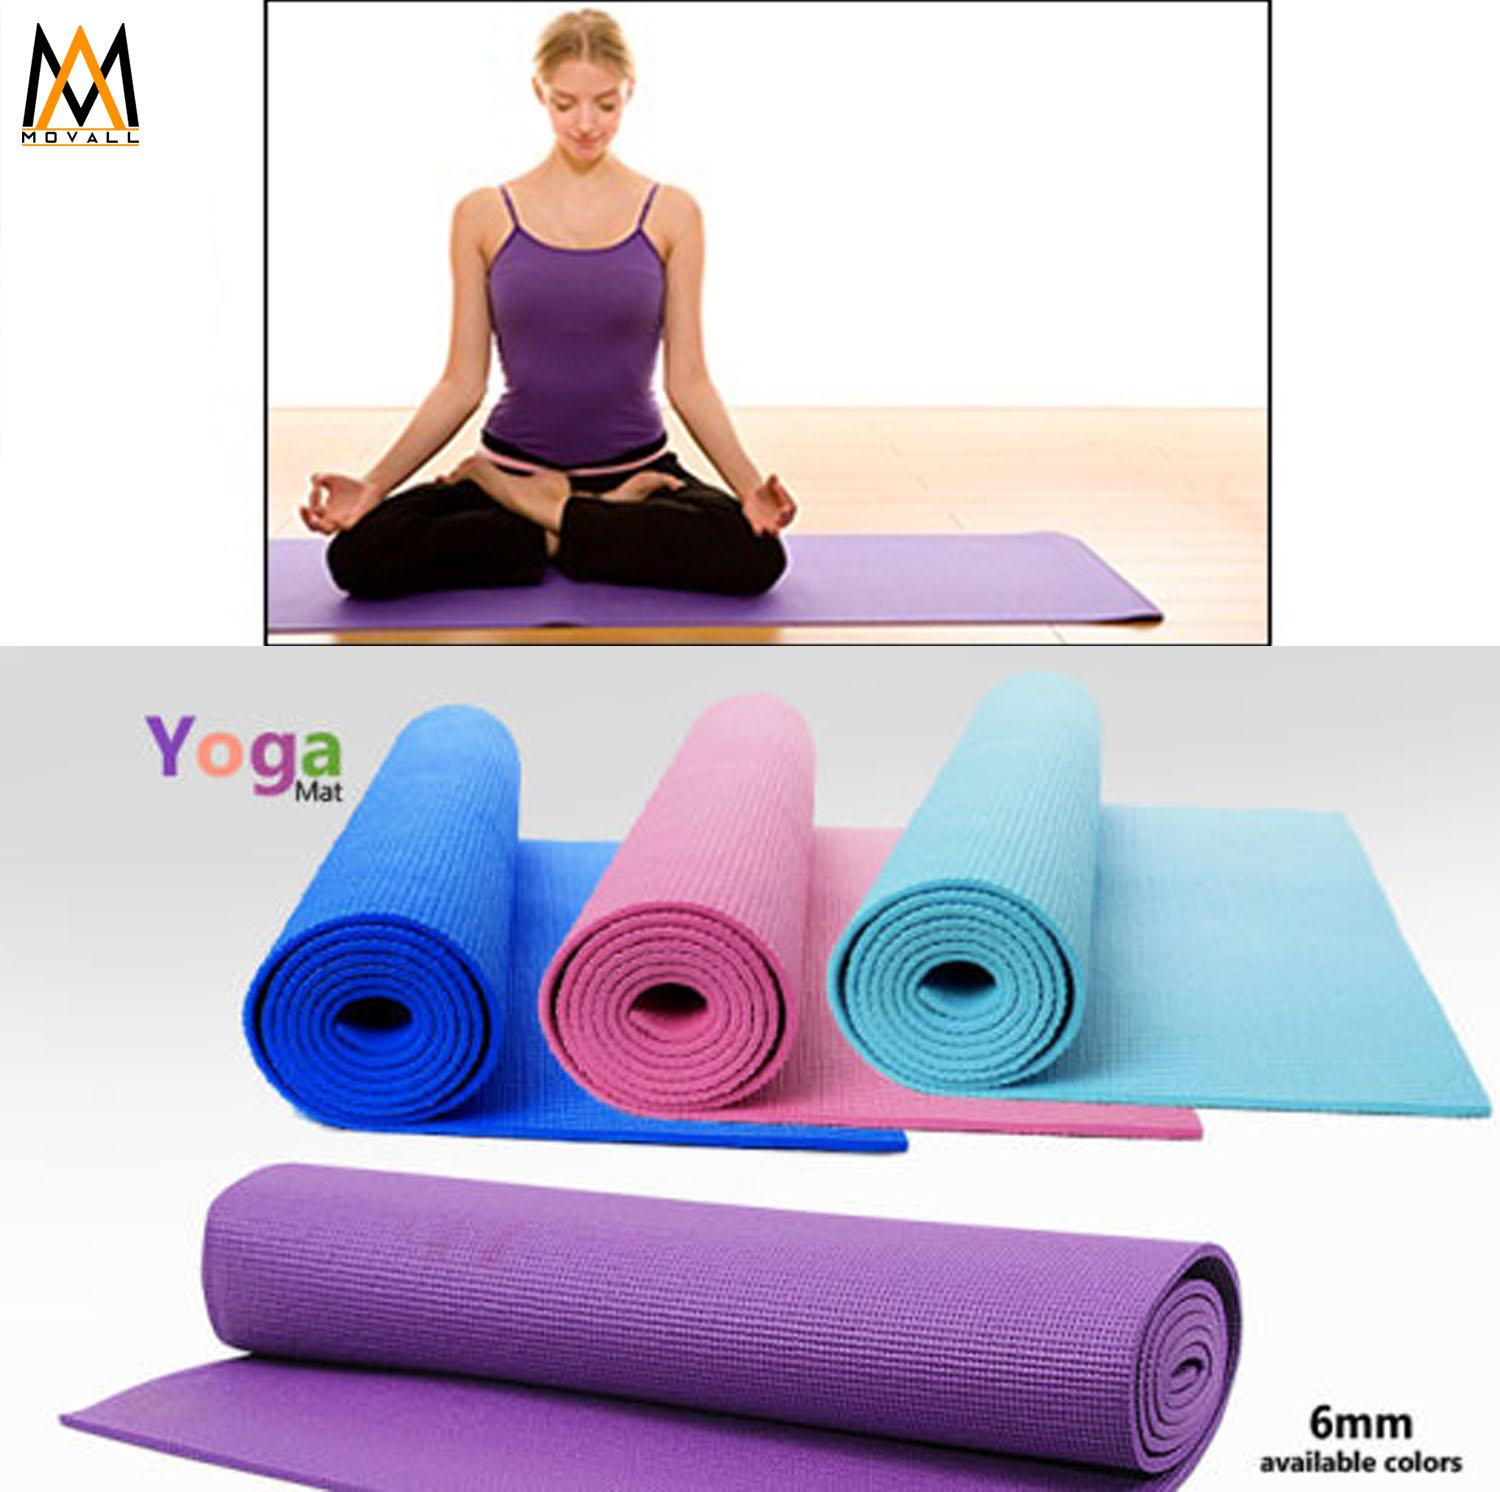 Yoga Mat Buy Sell Online Yoga Mats With Cheap Price Lazada Ph